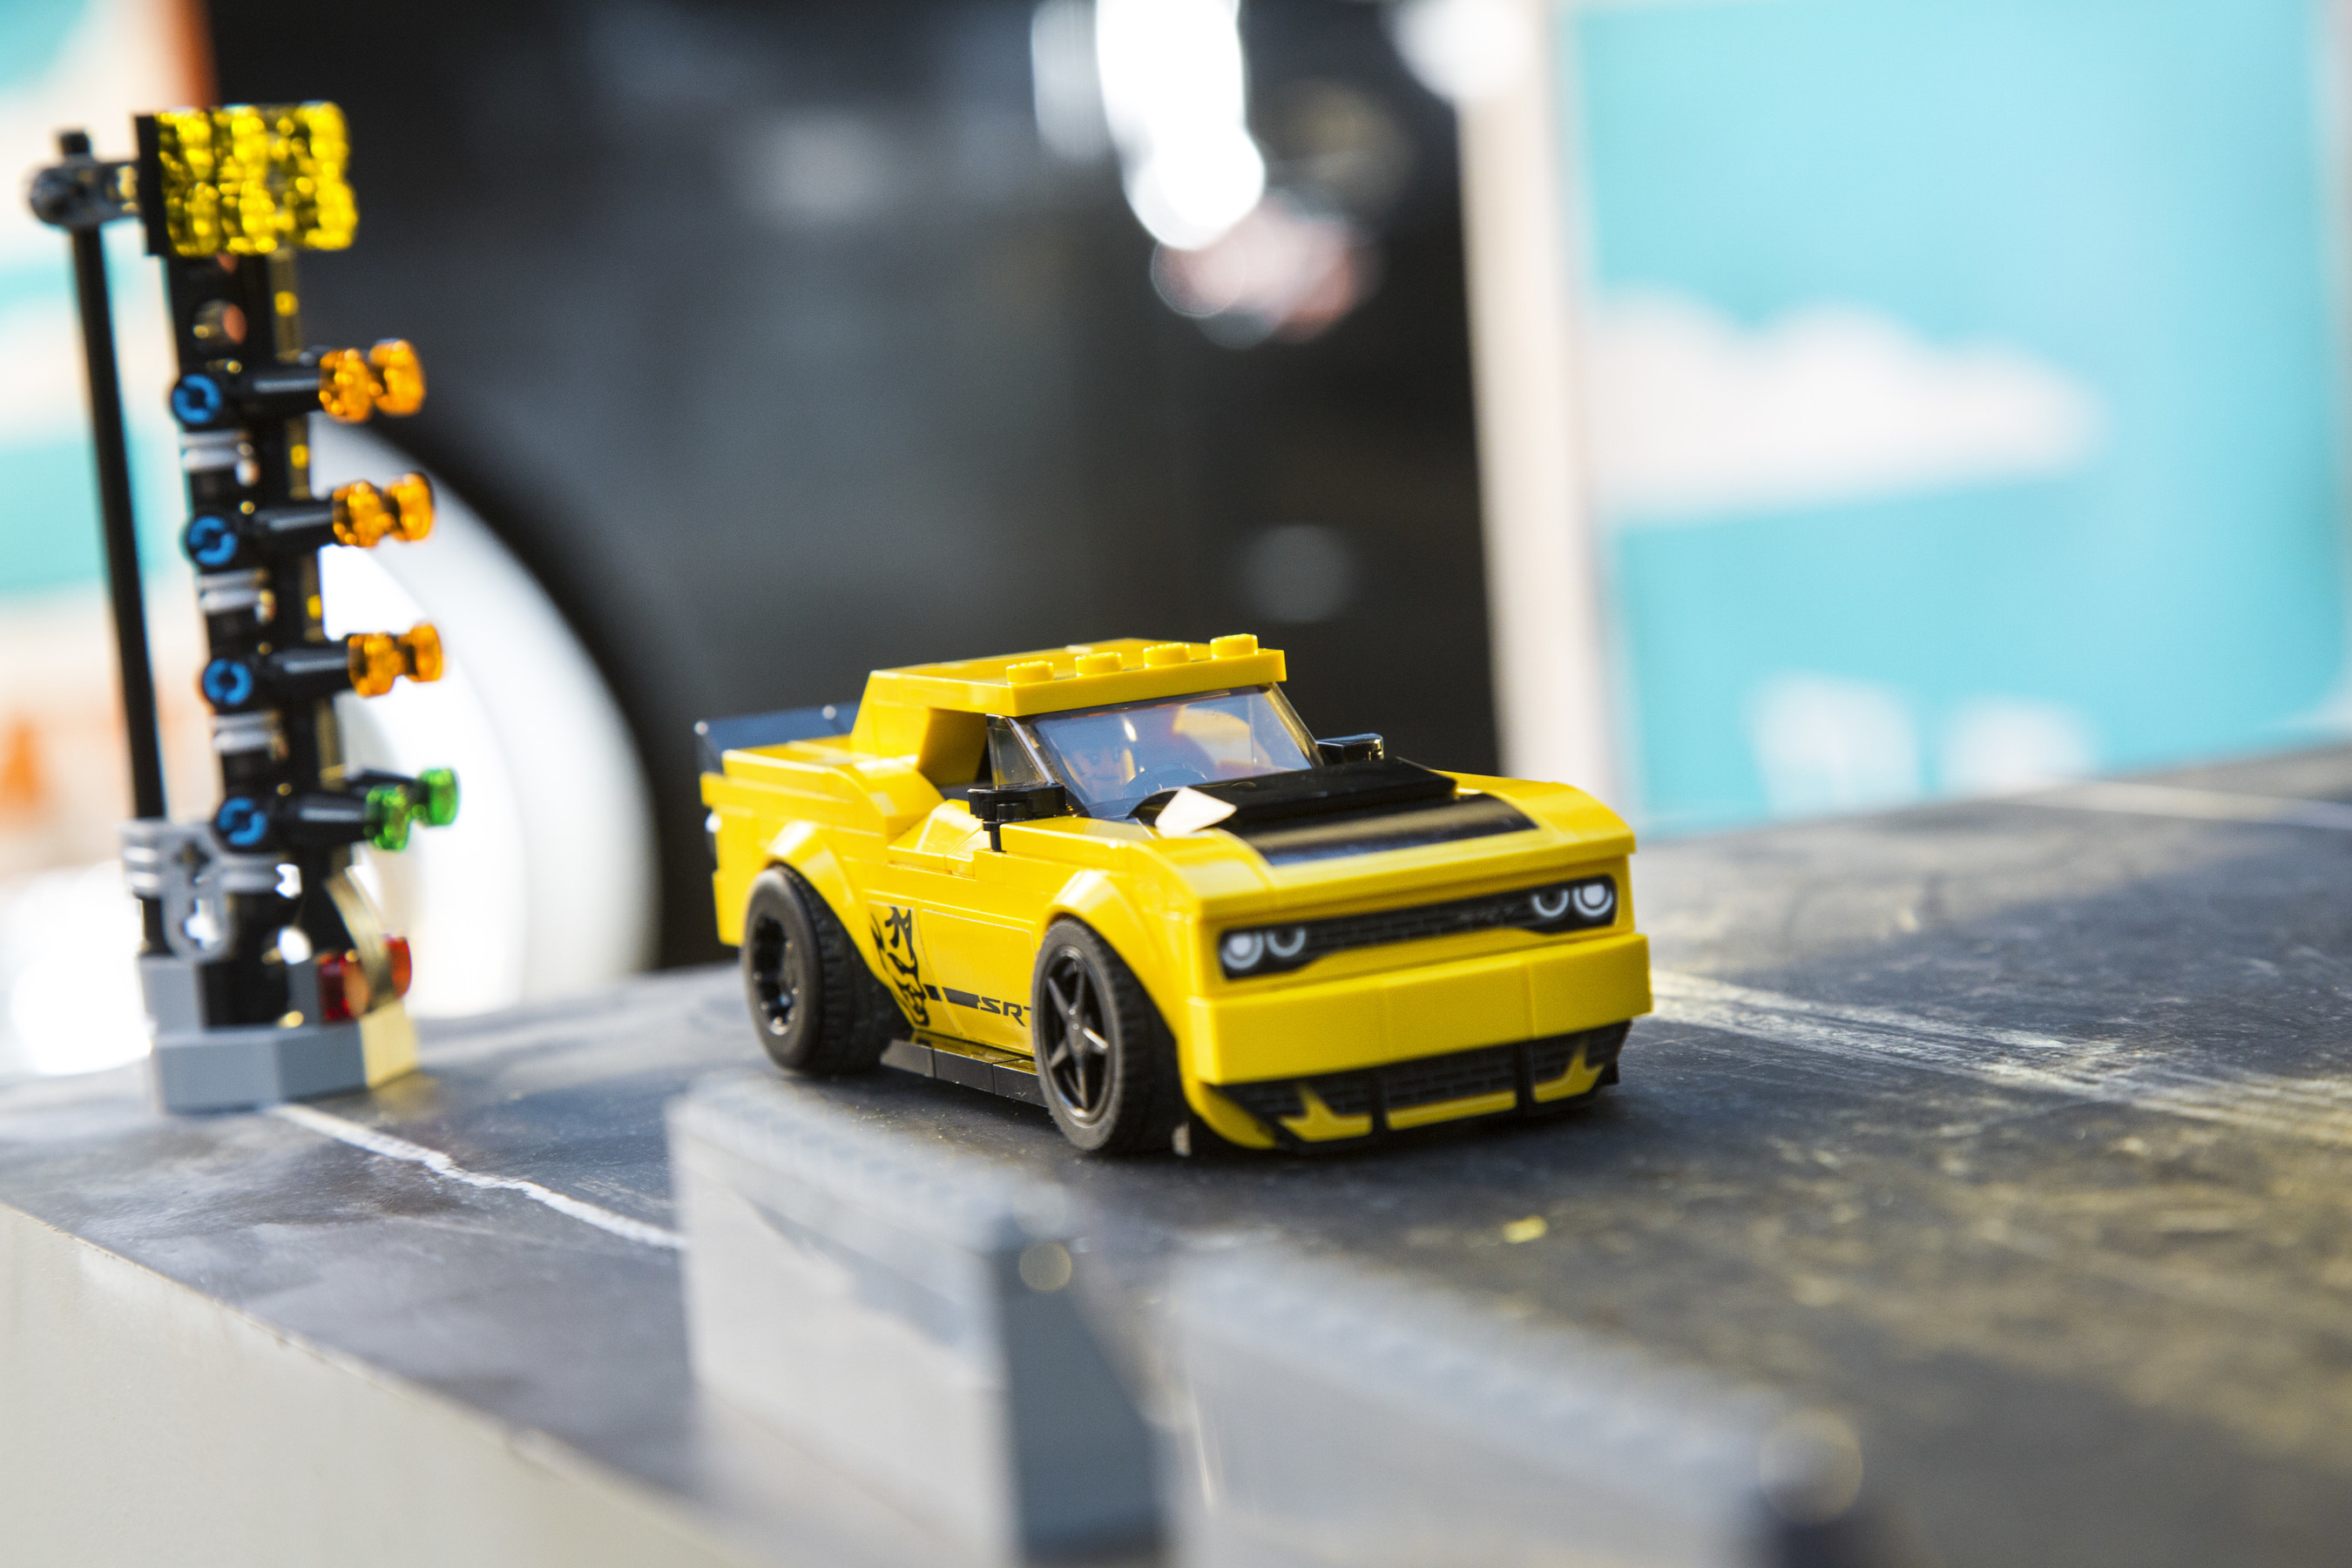 Dodge//SRT Brand and the LEGO Group launch new LEGO® Speed Champions building set featuring the 2018 Dodge Challenger SRT Demon and a 30-second televsion commercial as part of new marketing campaign